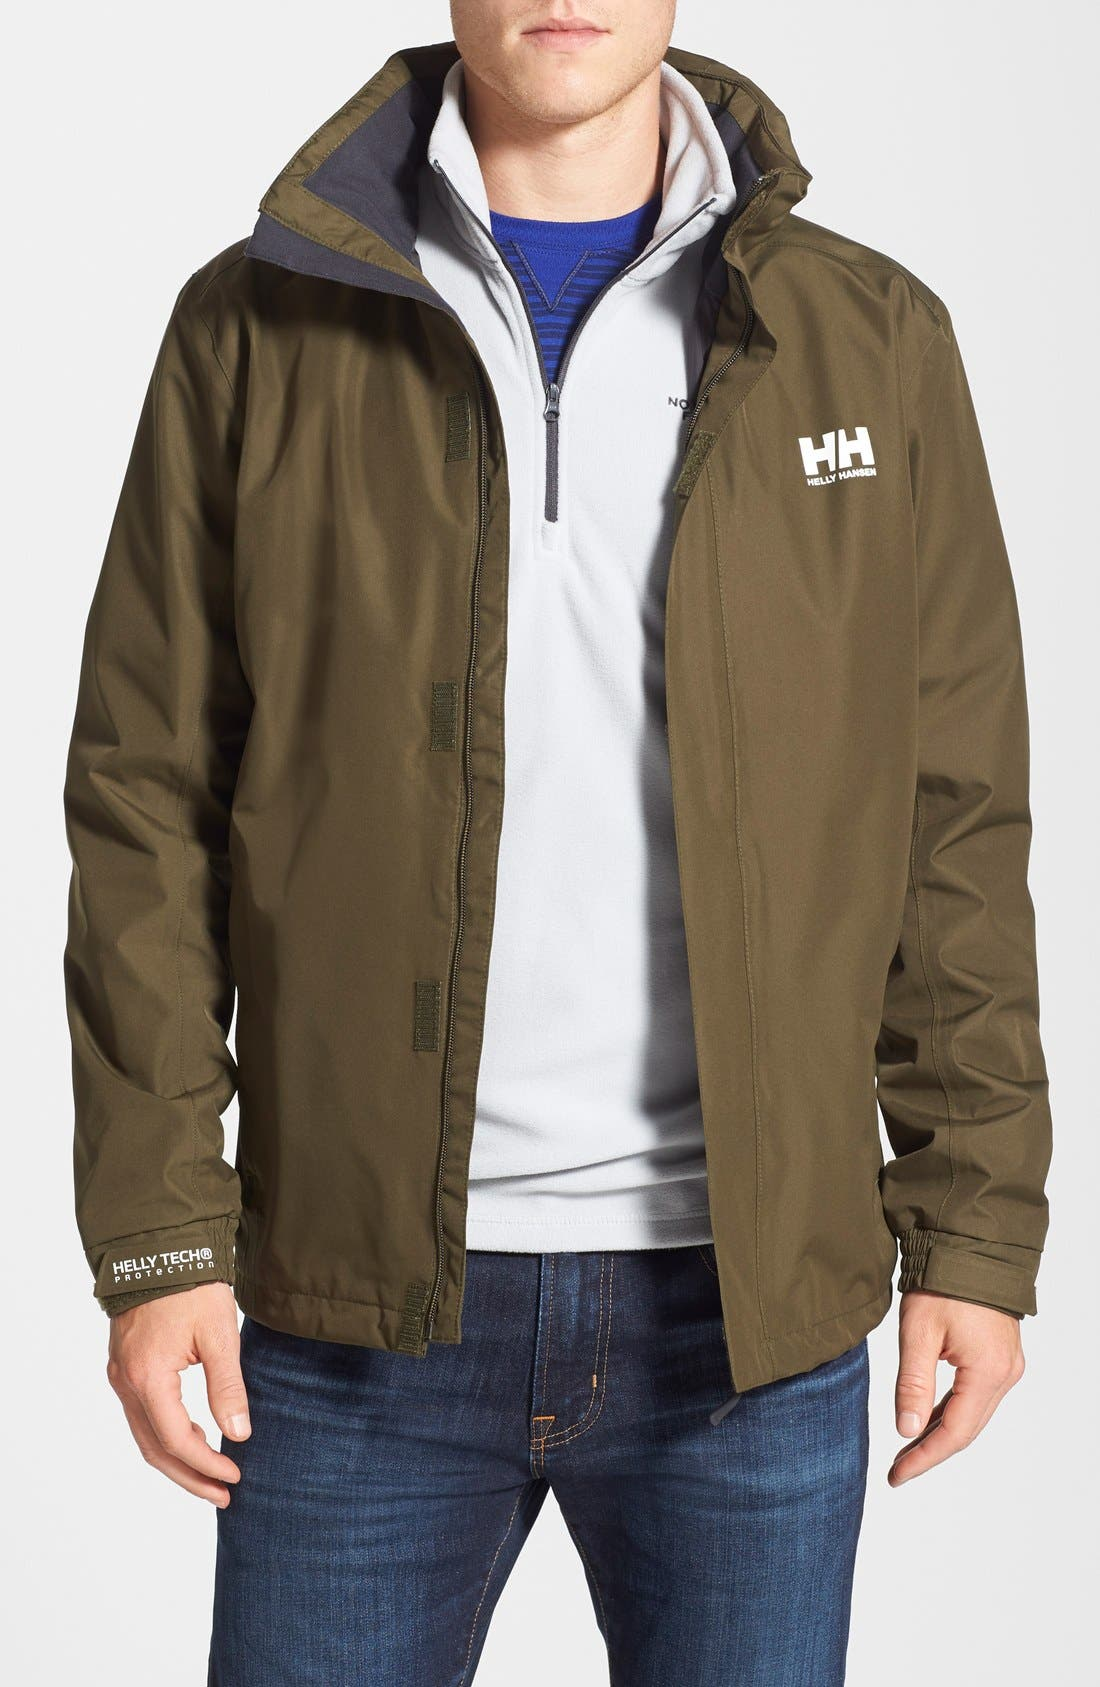 Main Image - Helly Hansen 'Dubliner' Waterproof Jacket